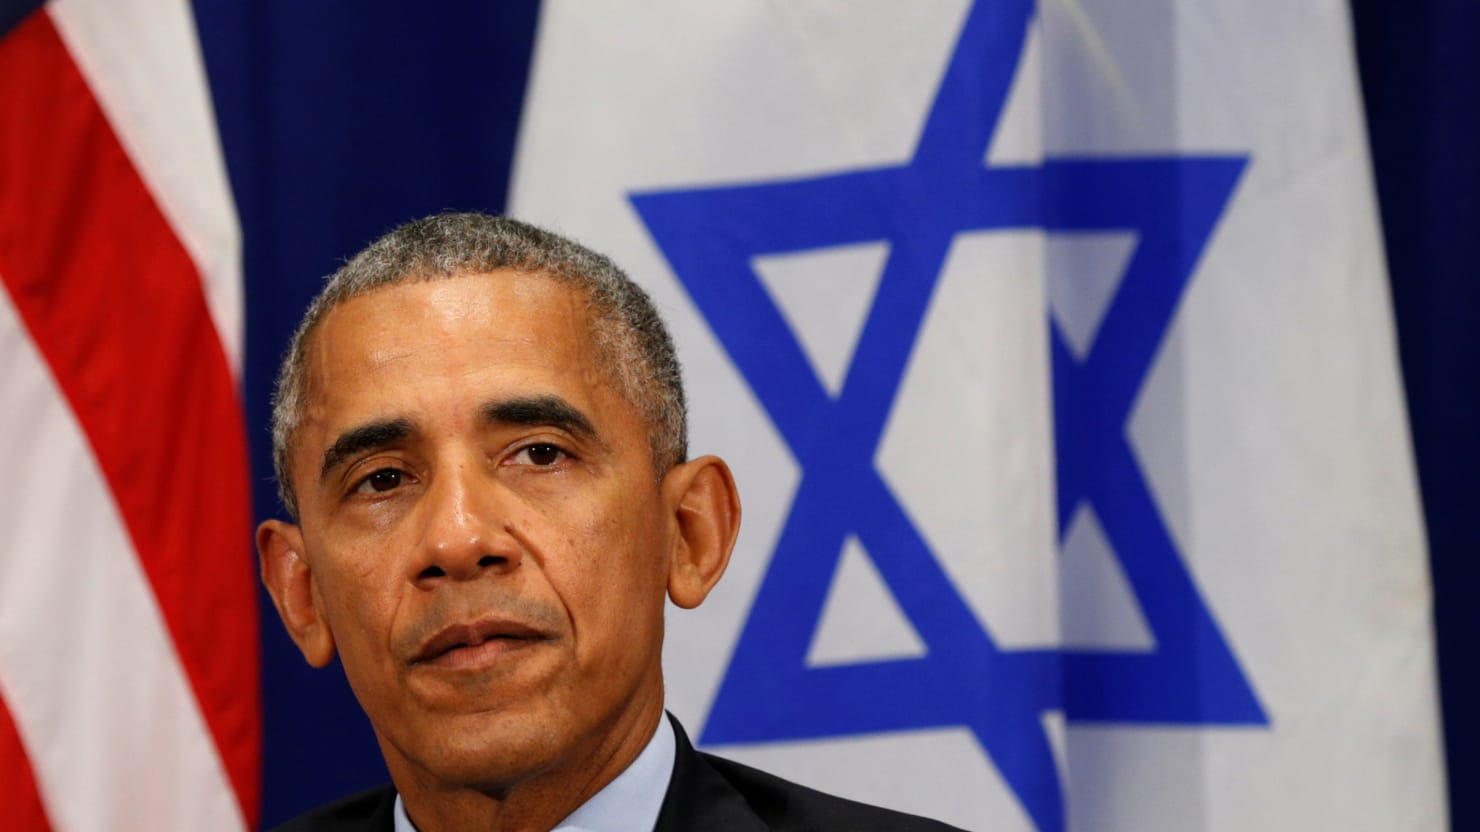 Why Did Obama Let the UN Criticize Israel? Because It Was the Last Chance to Act Sane